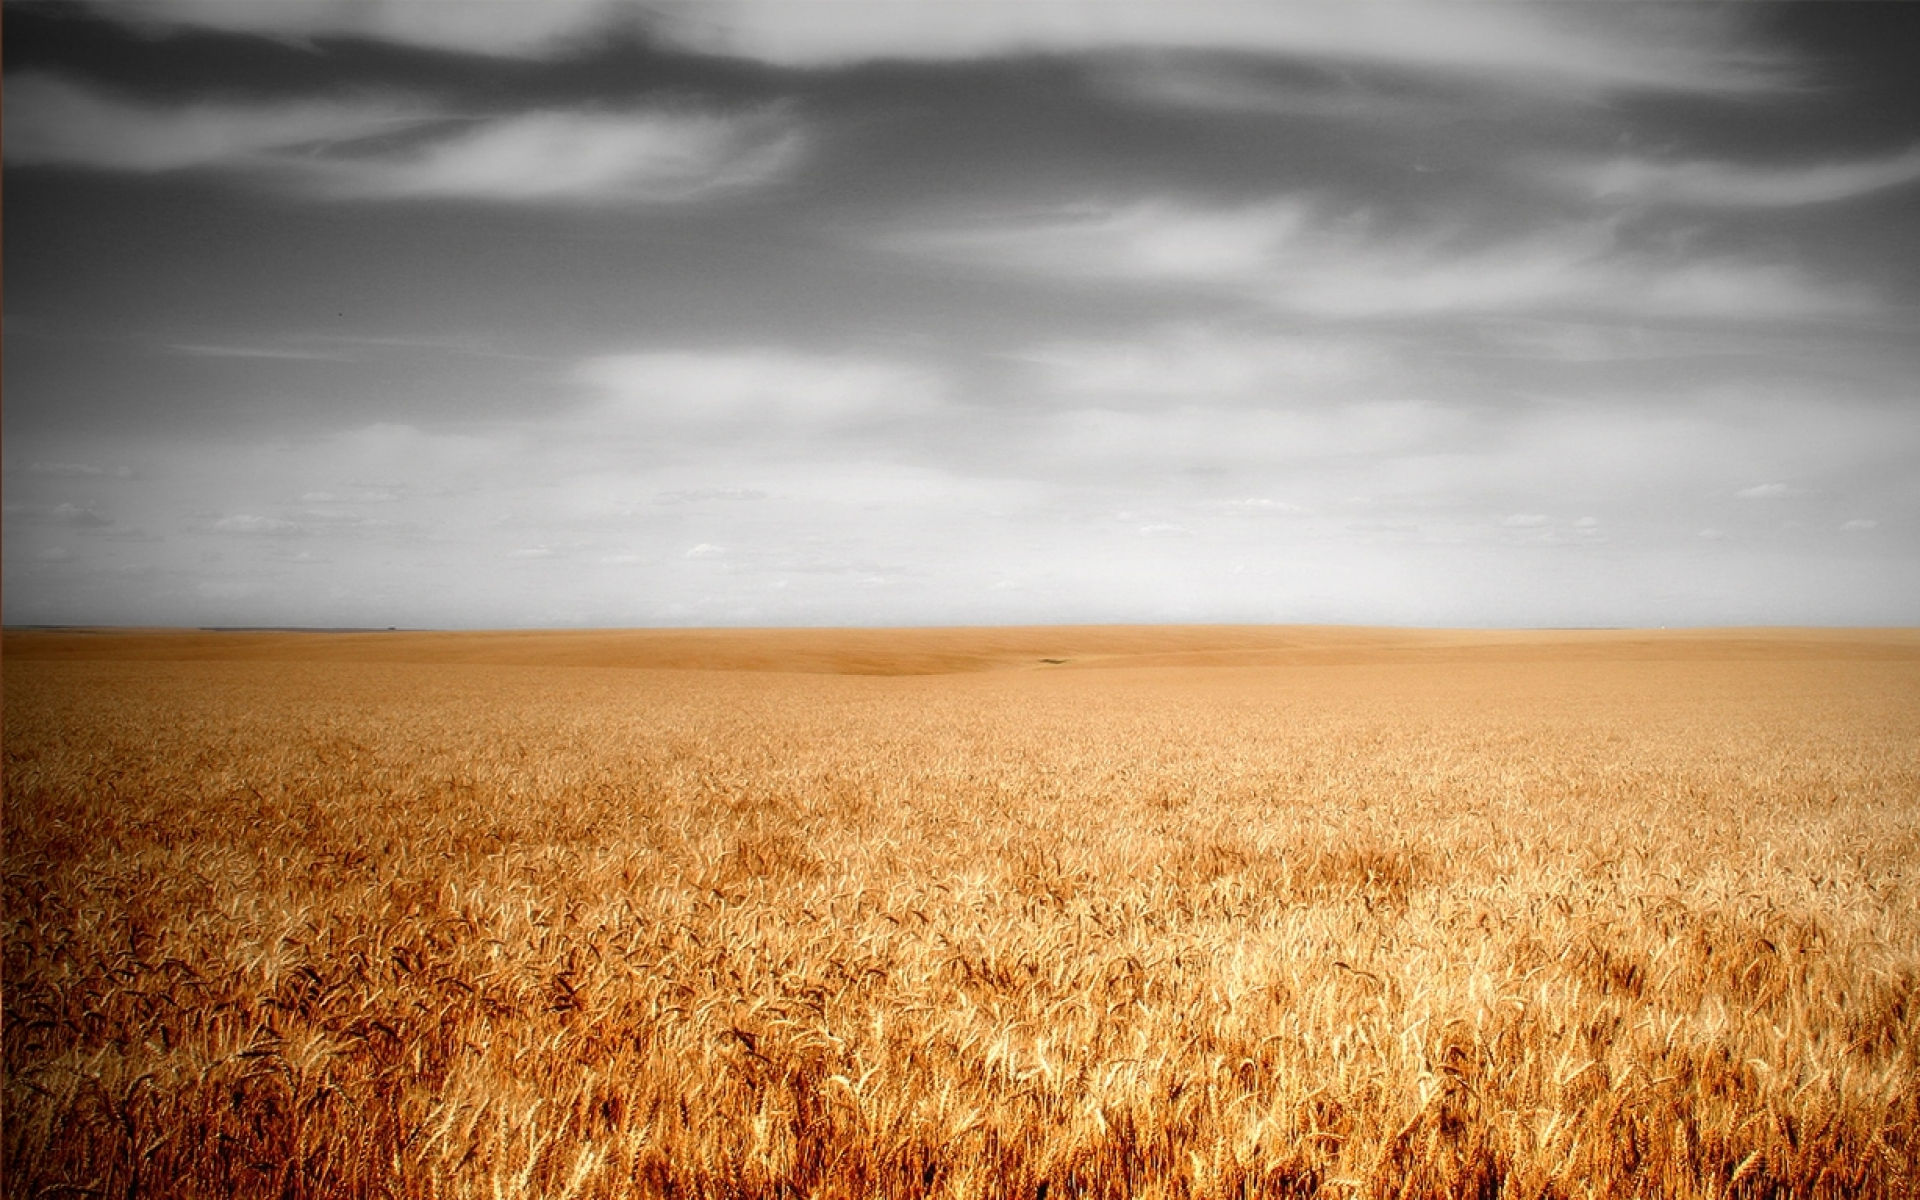 A Wallpaper Fall 1920x1200 Wheat Field Amp Gray Sky Desktop Pc And Mac Wallpaper